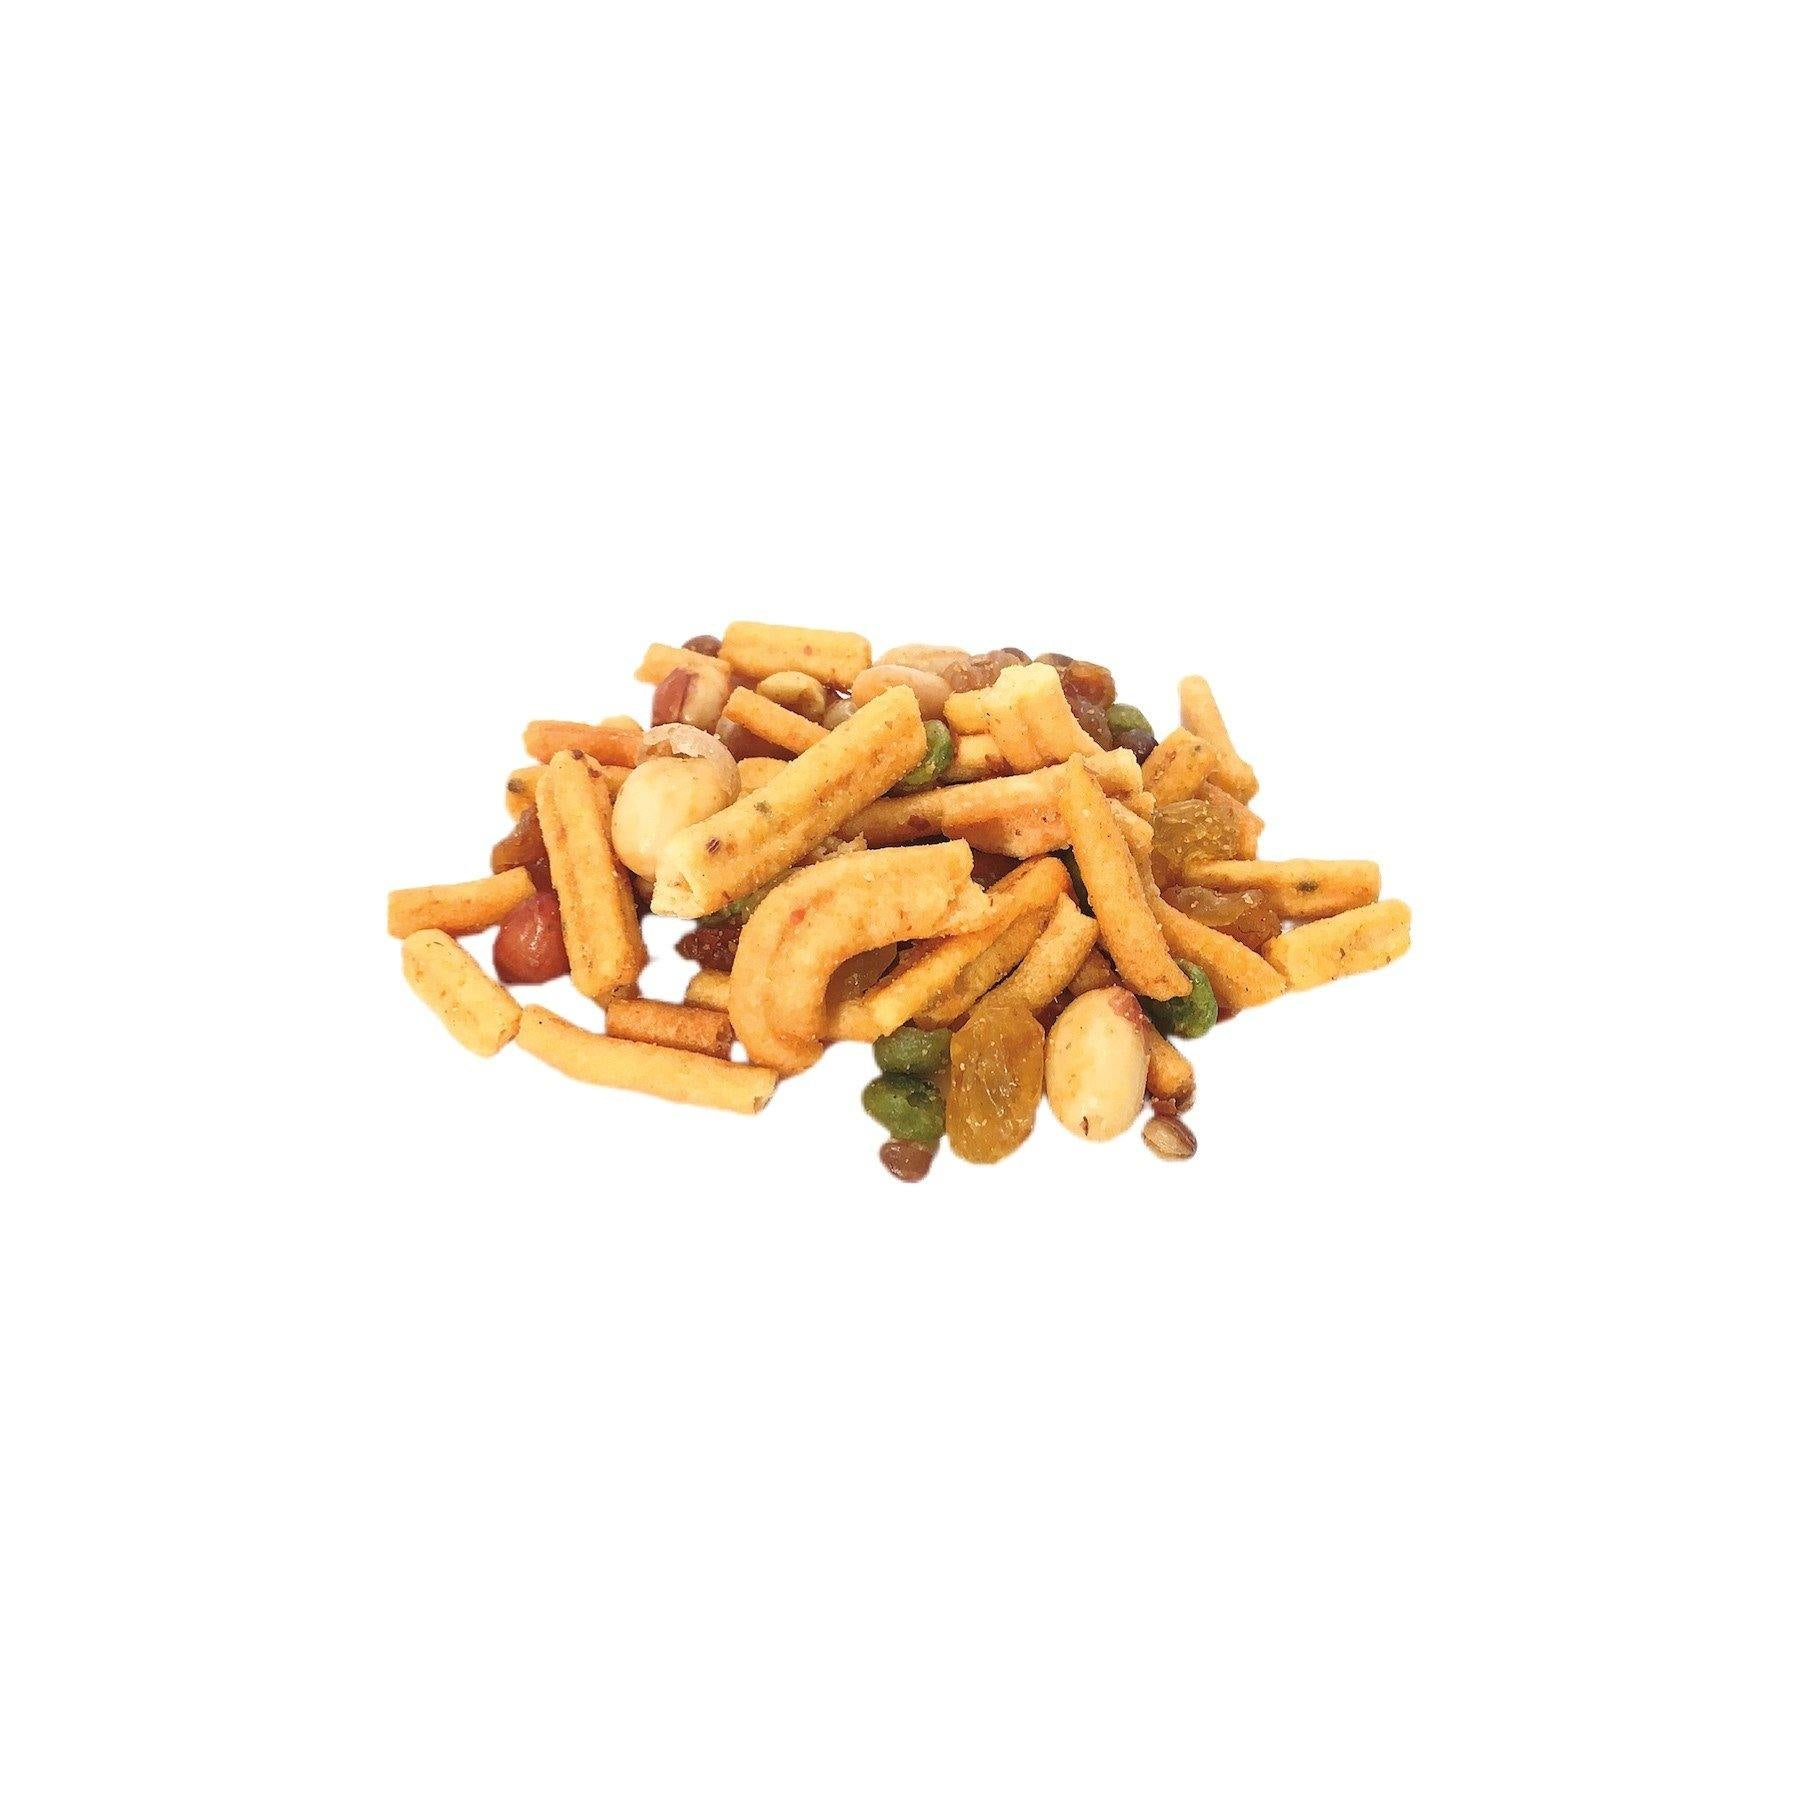 Luxury Bombay Mix - The Dormen Food Company